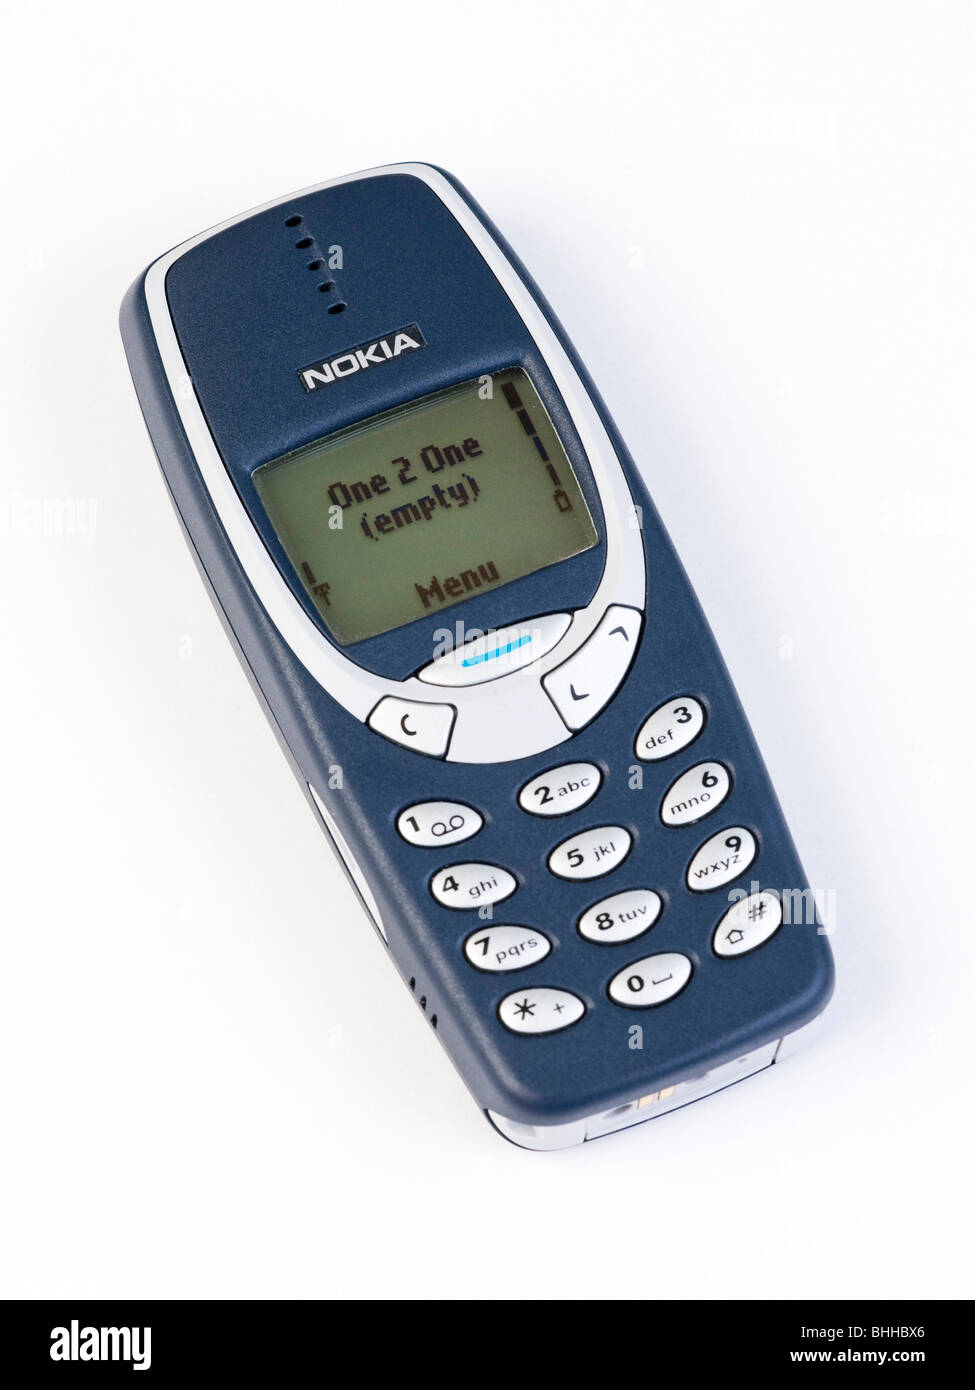 Nokia mobile telephone cut out stock images pictures alamy nokia 3310 mobile phone stock image biocorpaavc Choice Image